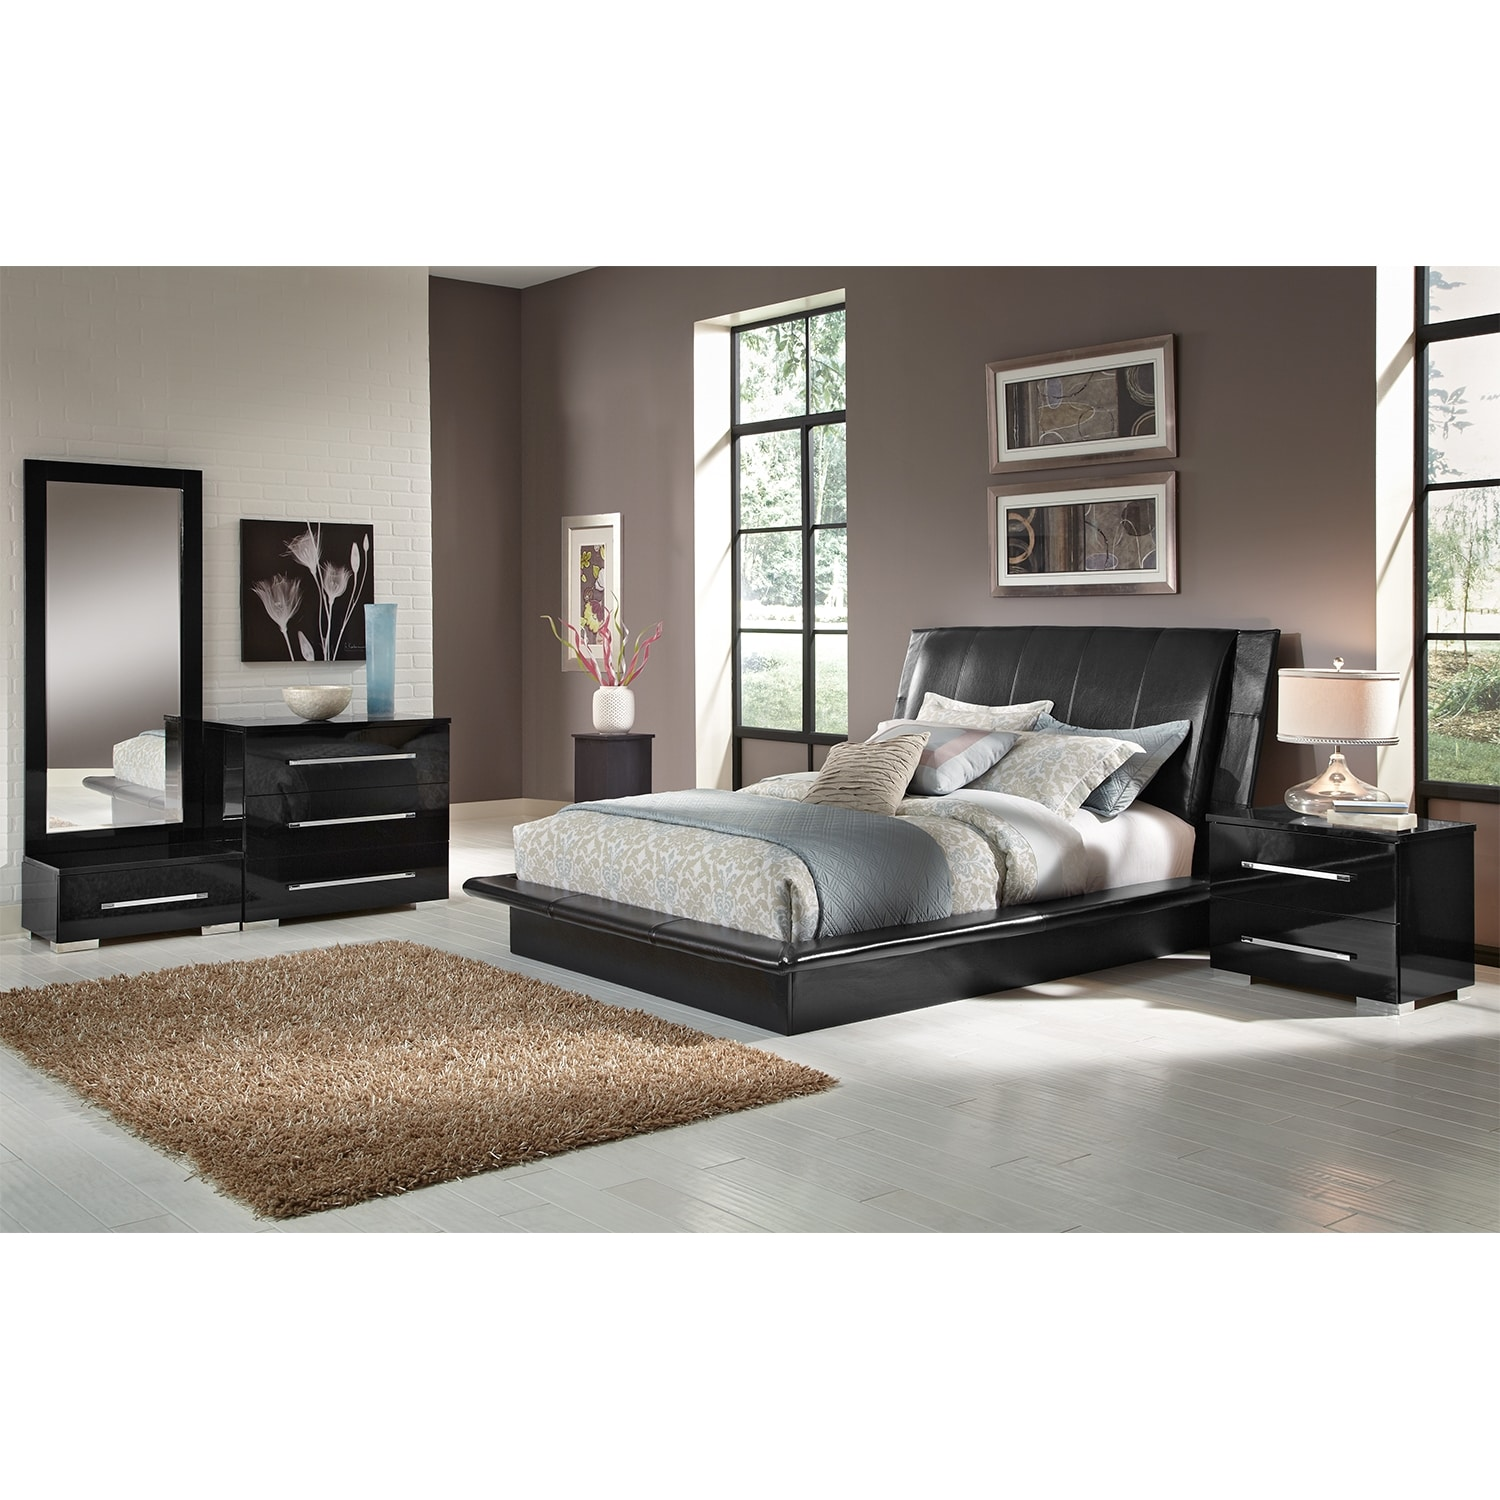 Dimora King Upholstered Bed Black Value City Furniture